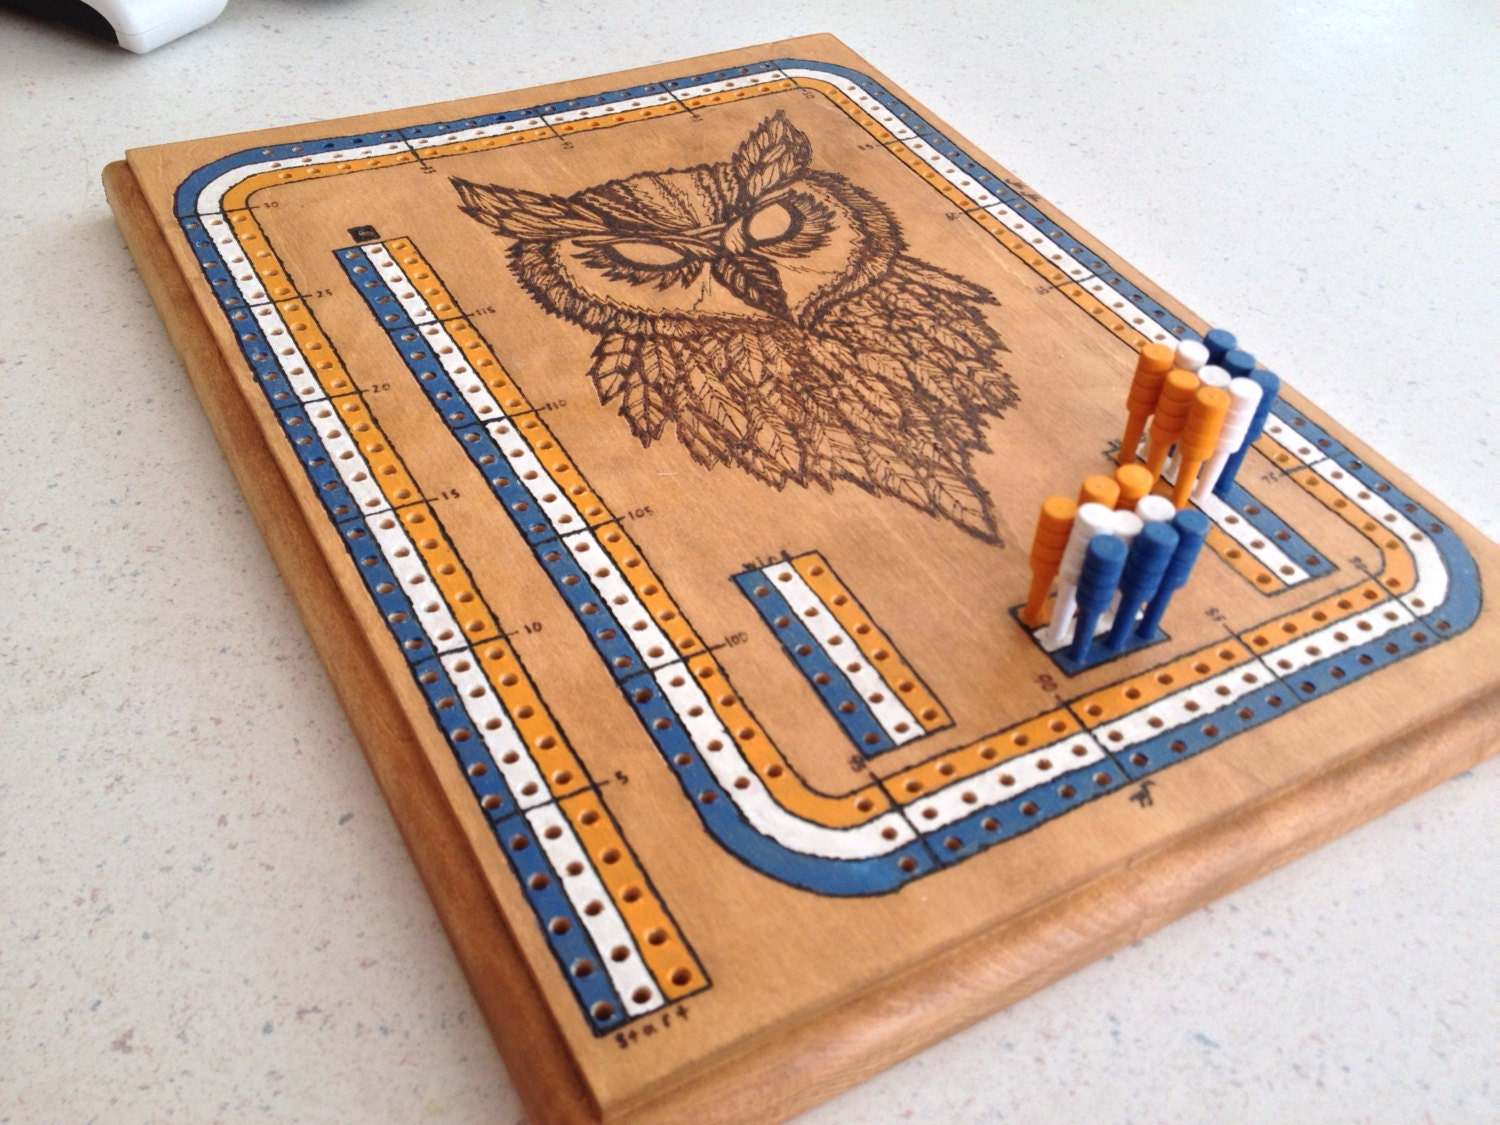 Crib boards for sale uk - Personalized Cribbage Board Free Shipping Christmas Present Birthday Wedding Favor Mother And Fathers Day Anniversary Wood Burn